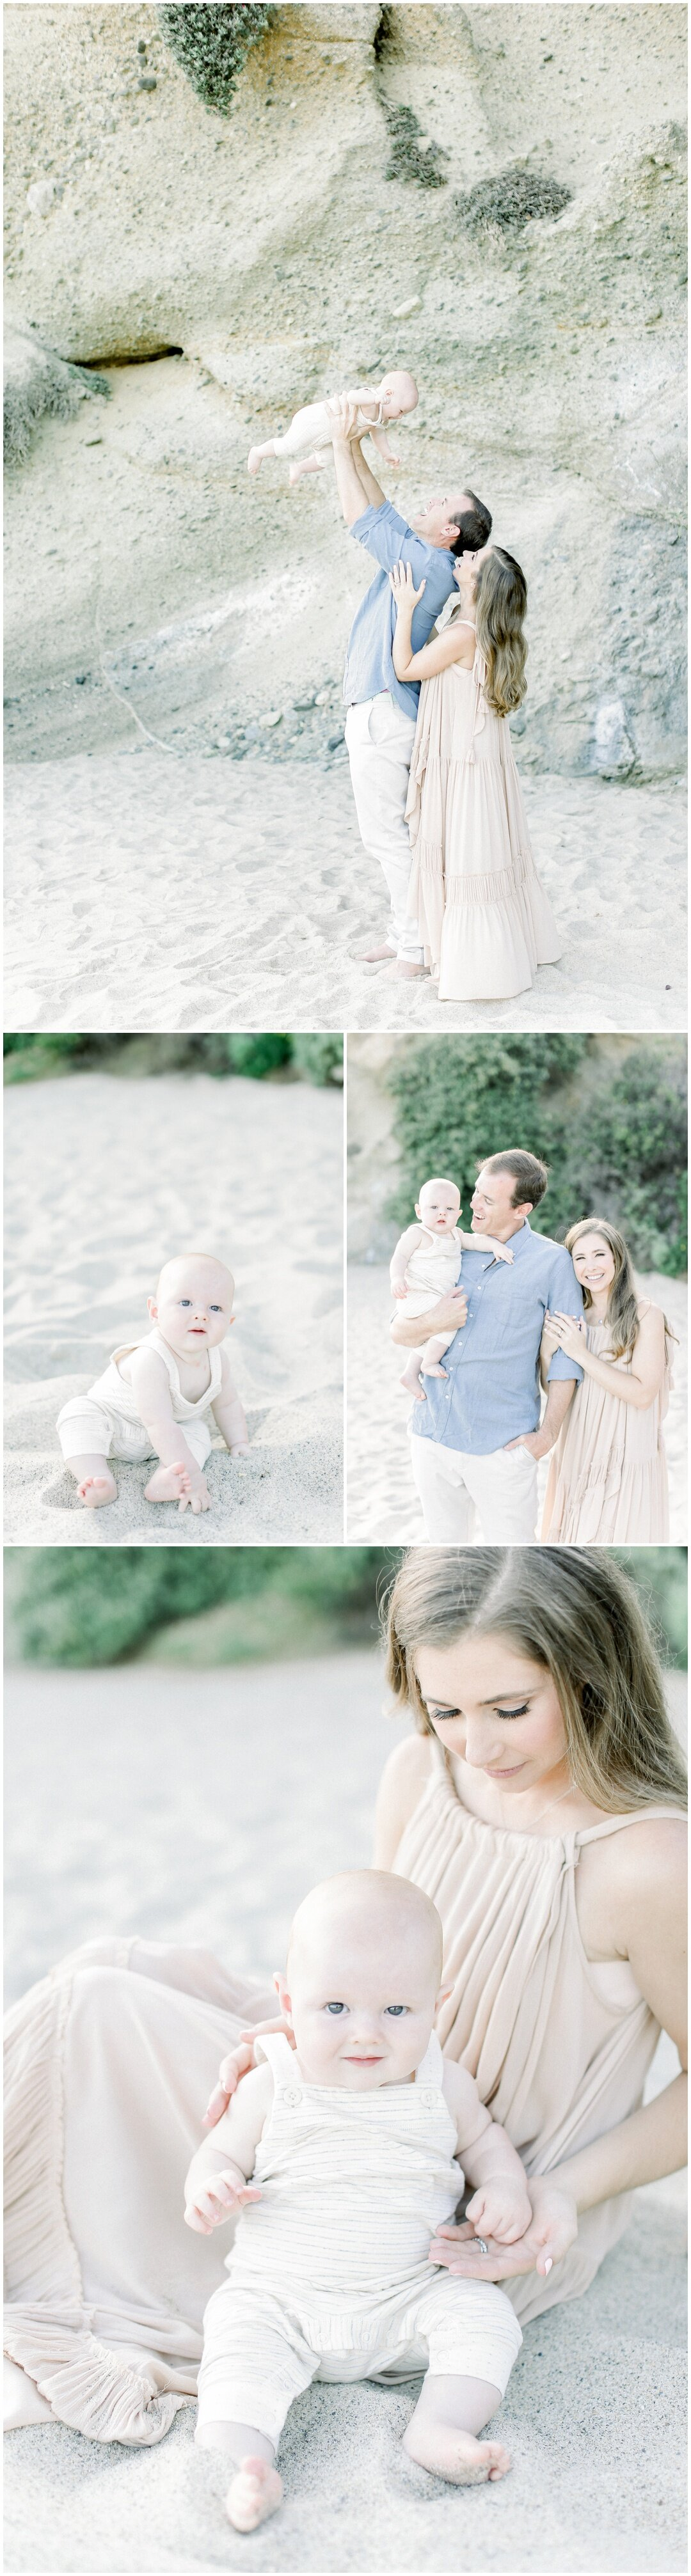 Newport+Beach+Newborn+Maternity+Photographer+Orange+County+Family+Photographer+Cori+Kleckner+Photography+Forgatch+Family+Matt+Kelley+Jack+Forgatch+_4416.jpg